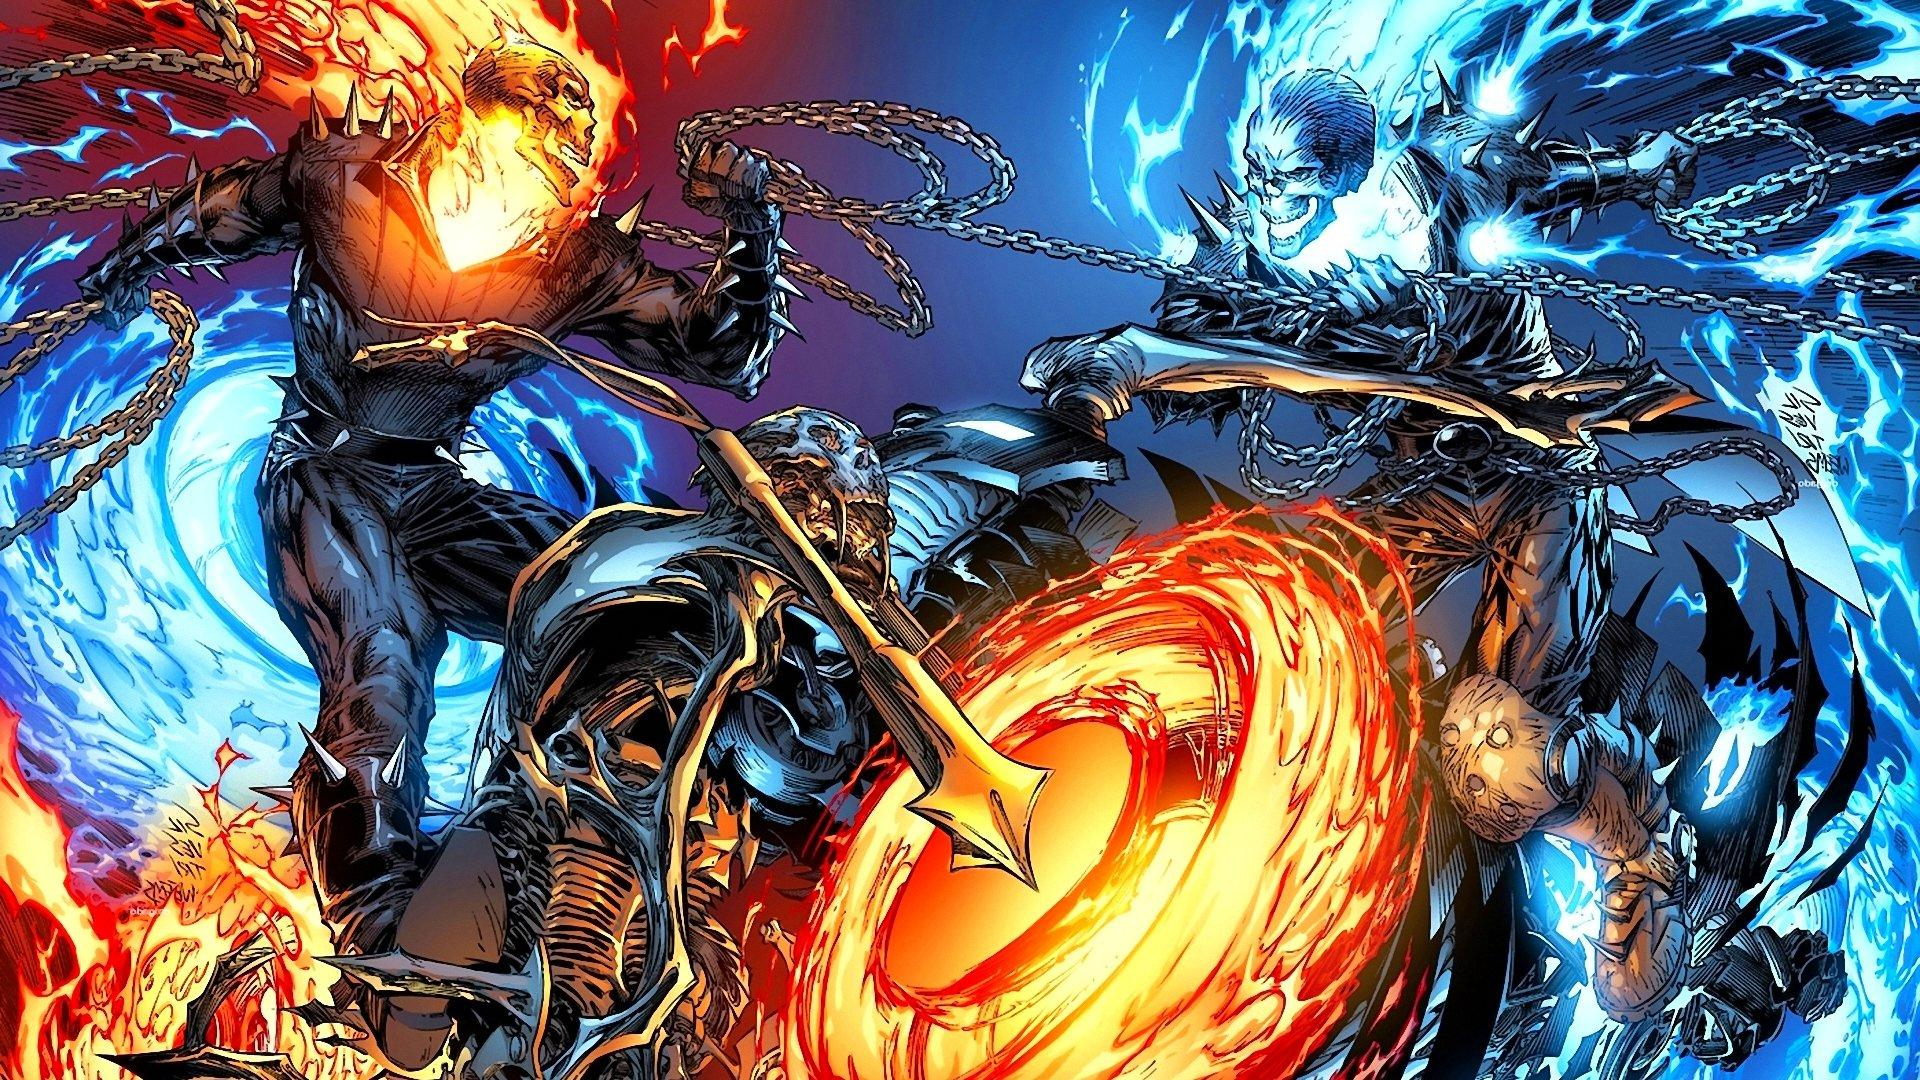 1920x1080 Ghost Rider Wallpaper , Free Stock Wallpapers on ecopetit.cat